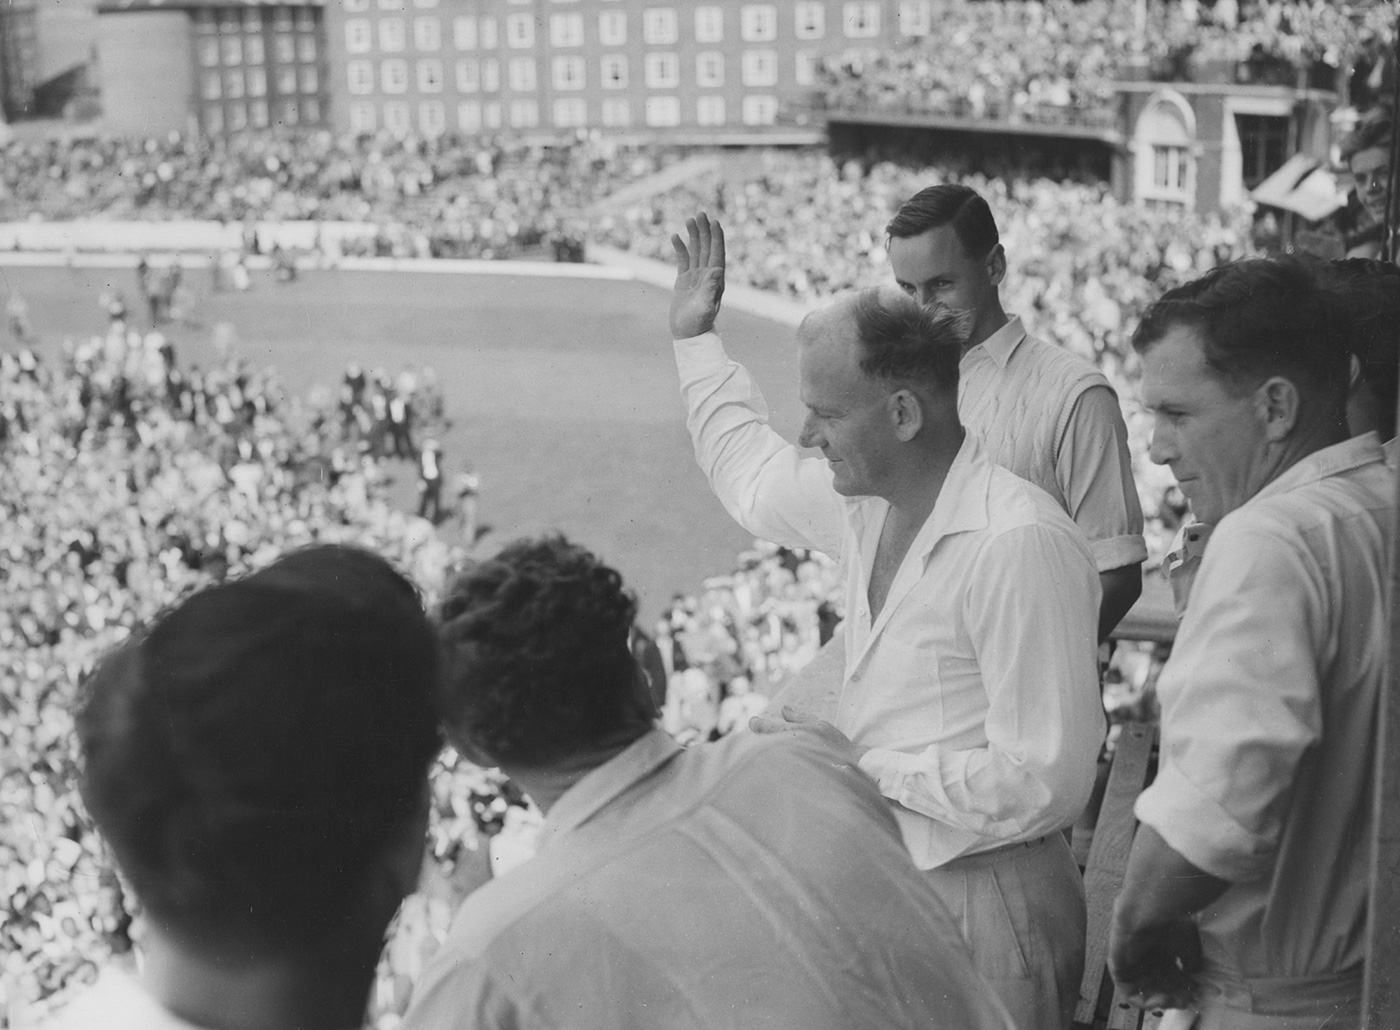 Tony Lock greets the fans after his 6 for 20 shot West Indies out for 86 at The Oval in 1957